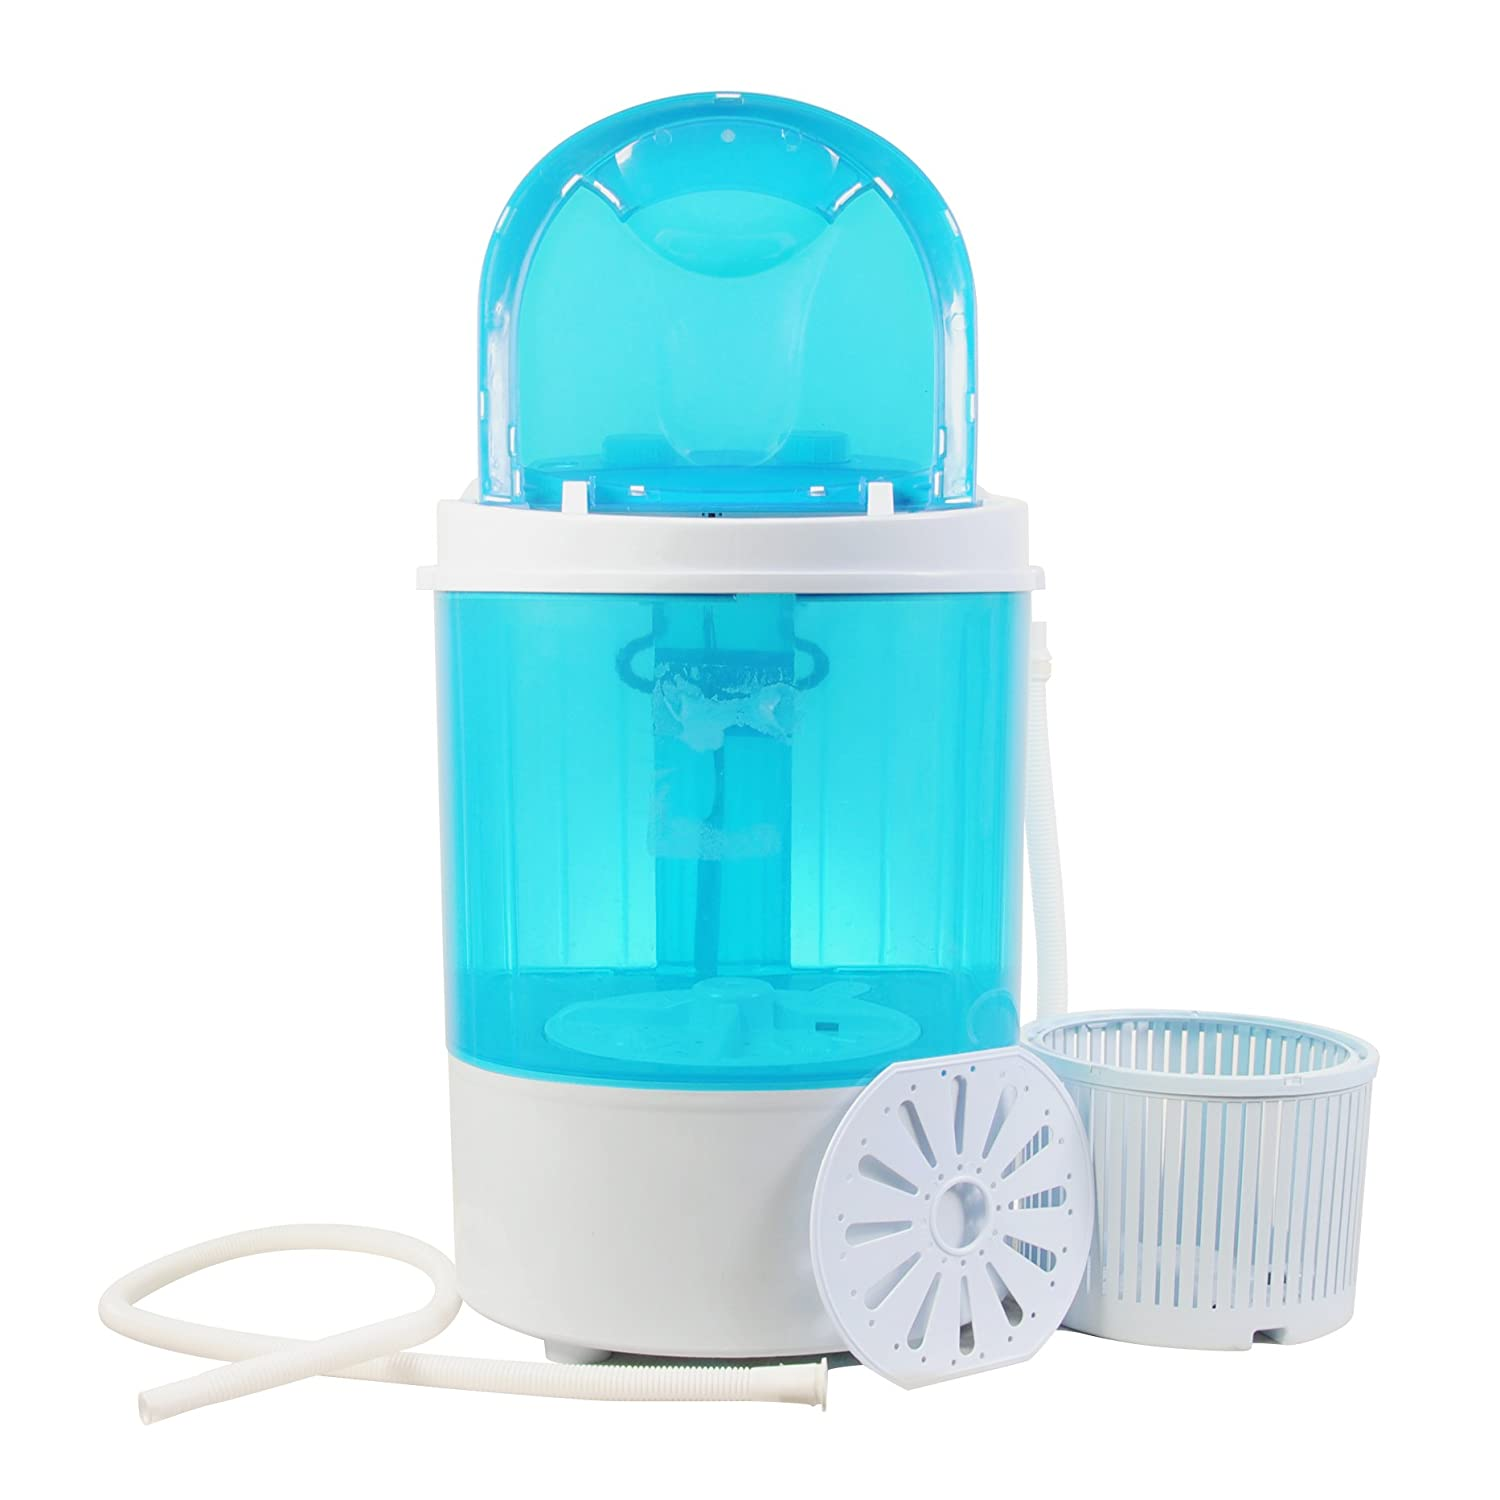 Bismi Mini Portable Washing Machine & Spin Dry 6.6 Lbs Capacity ...